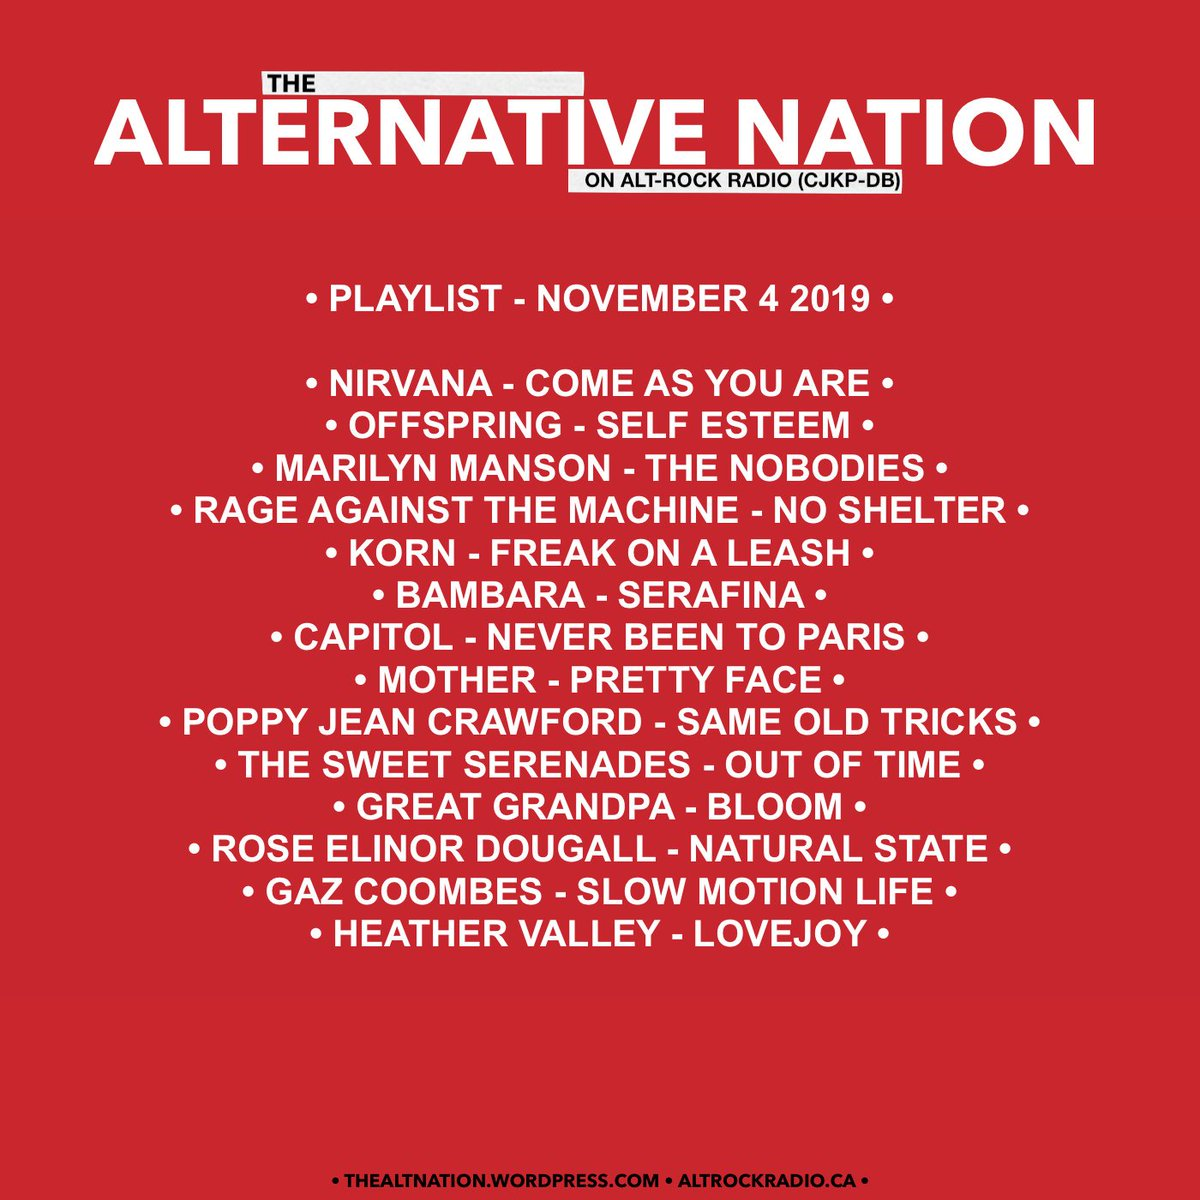 The Alternative Nation on @altrockradioca - November 4 2019 Playlist. Missed the show or live outside of Canada? Listen back on http://mixcloud.com/thealternativenation … #Playlist #Radio #yourFMalternative #InternetRadio #Canada #CanadaRocks #Alternative #Rock #Indie #IndieRock #Musicpic.twitter.com/RI4HKmWAsj